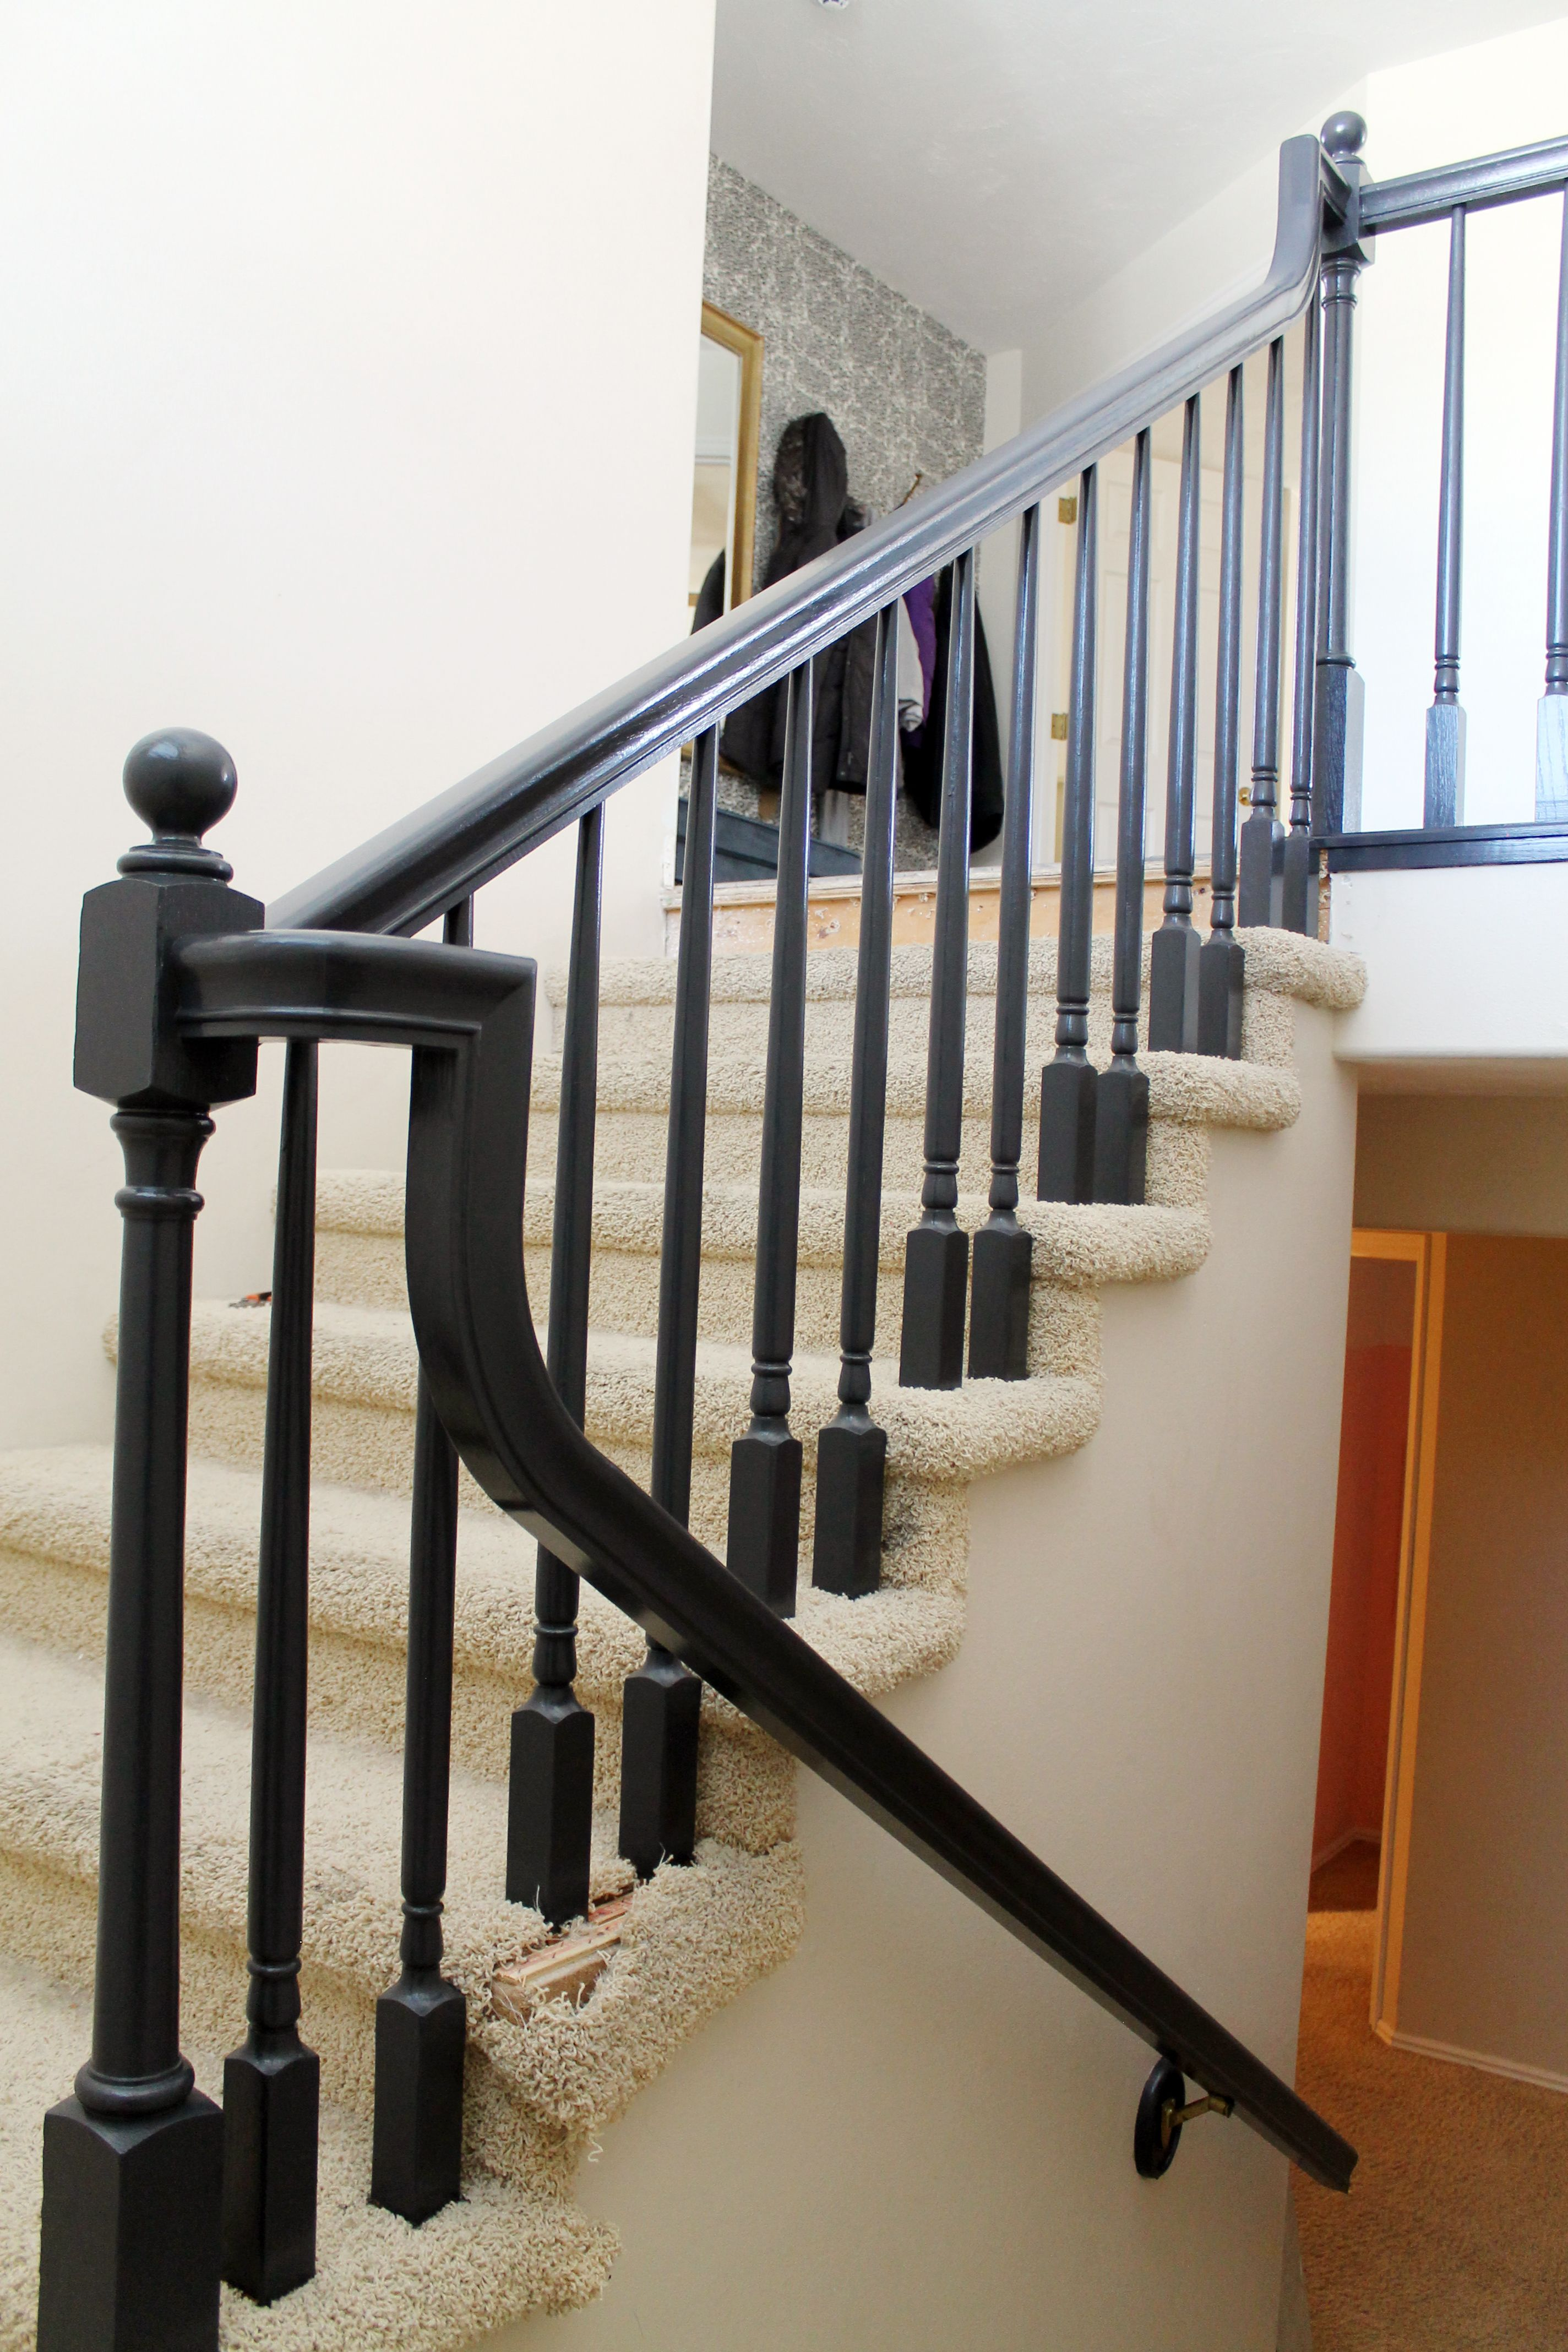 The Banister is Painted! (With images) | Banister remodel ...